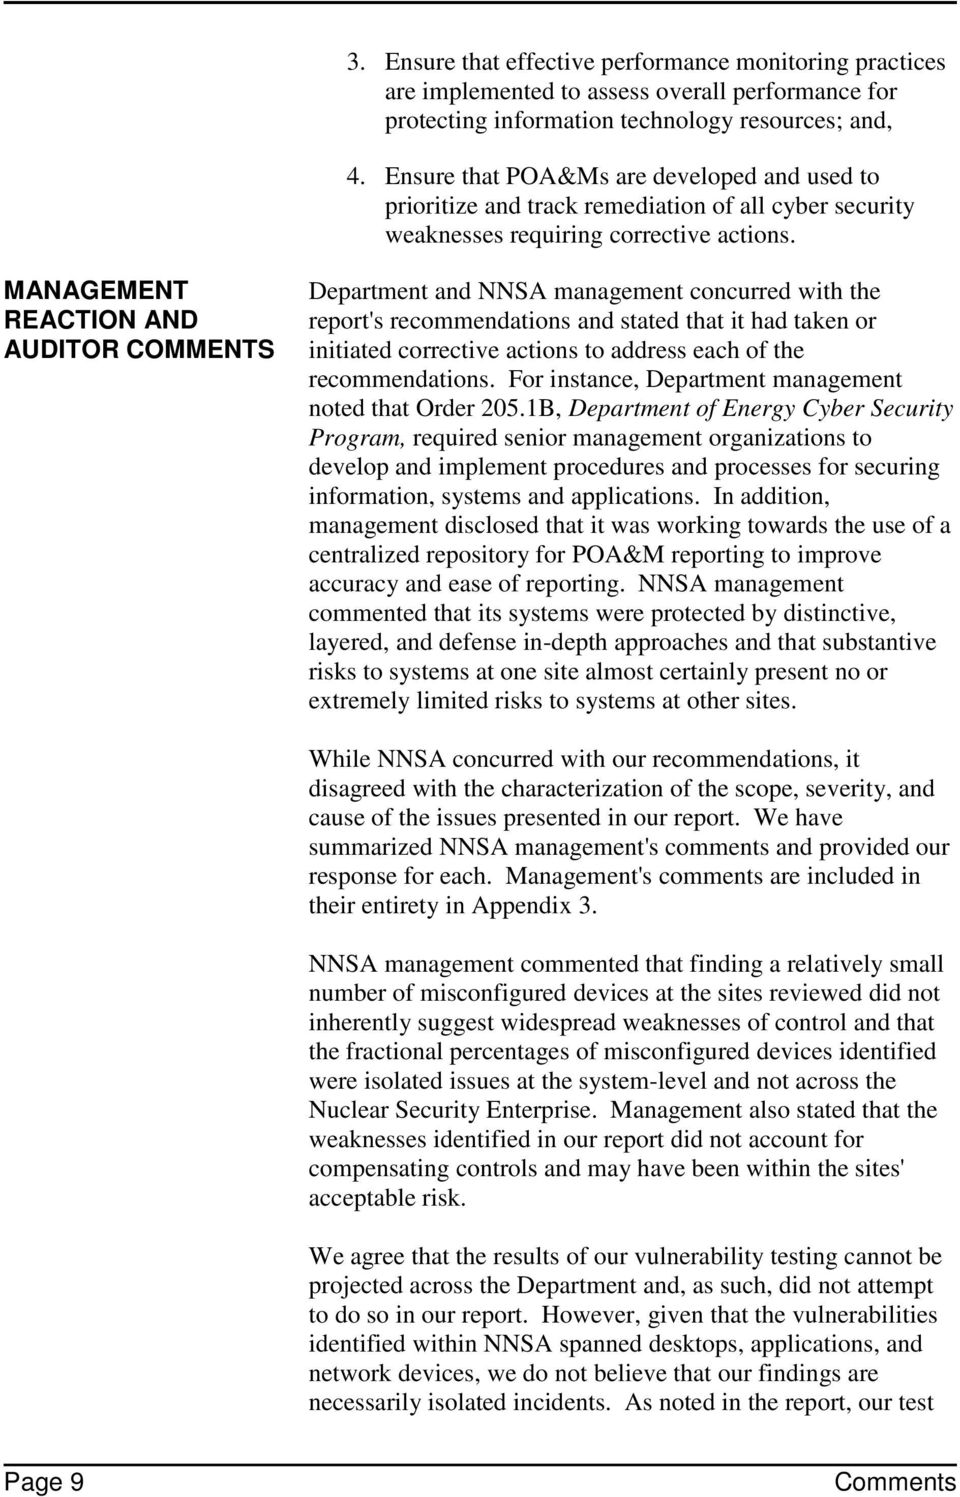 MANAGEMENT REACTION AND AUDITOR COMMENTS Department and NNSA management concurred with the report's recommendations and stated that it had taken or initiated corrective actions to address each of the